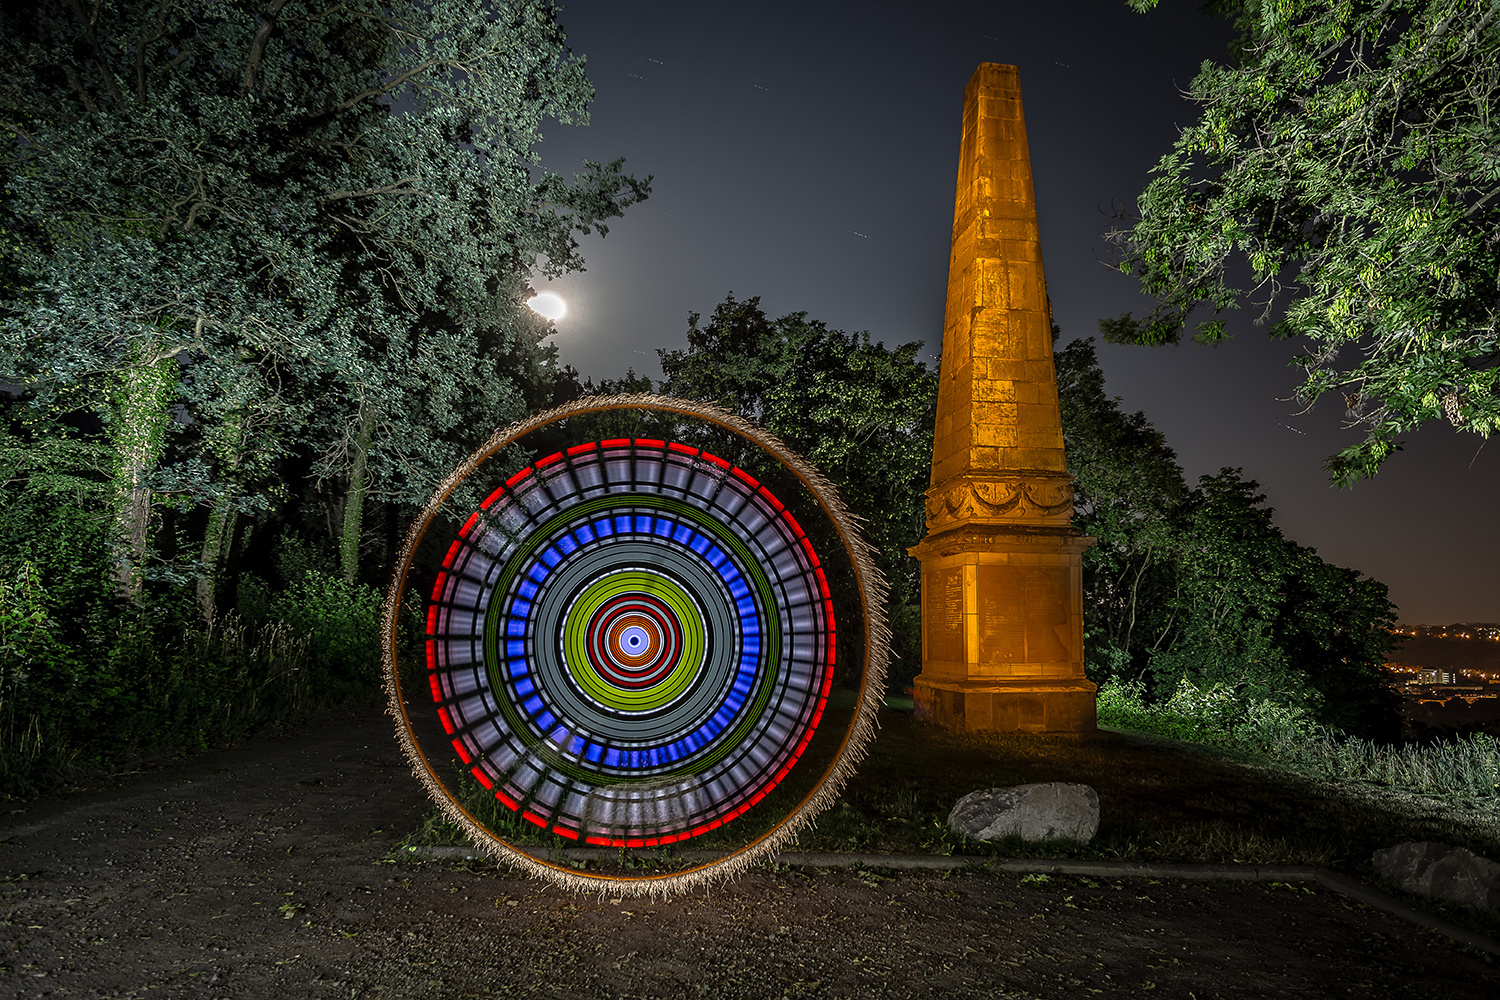 Electrical Movements in the Dark #265 - At the Monument